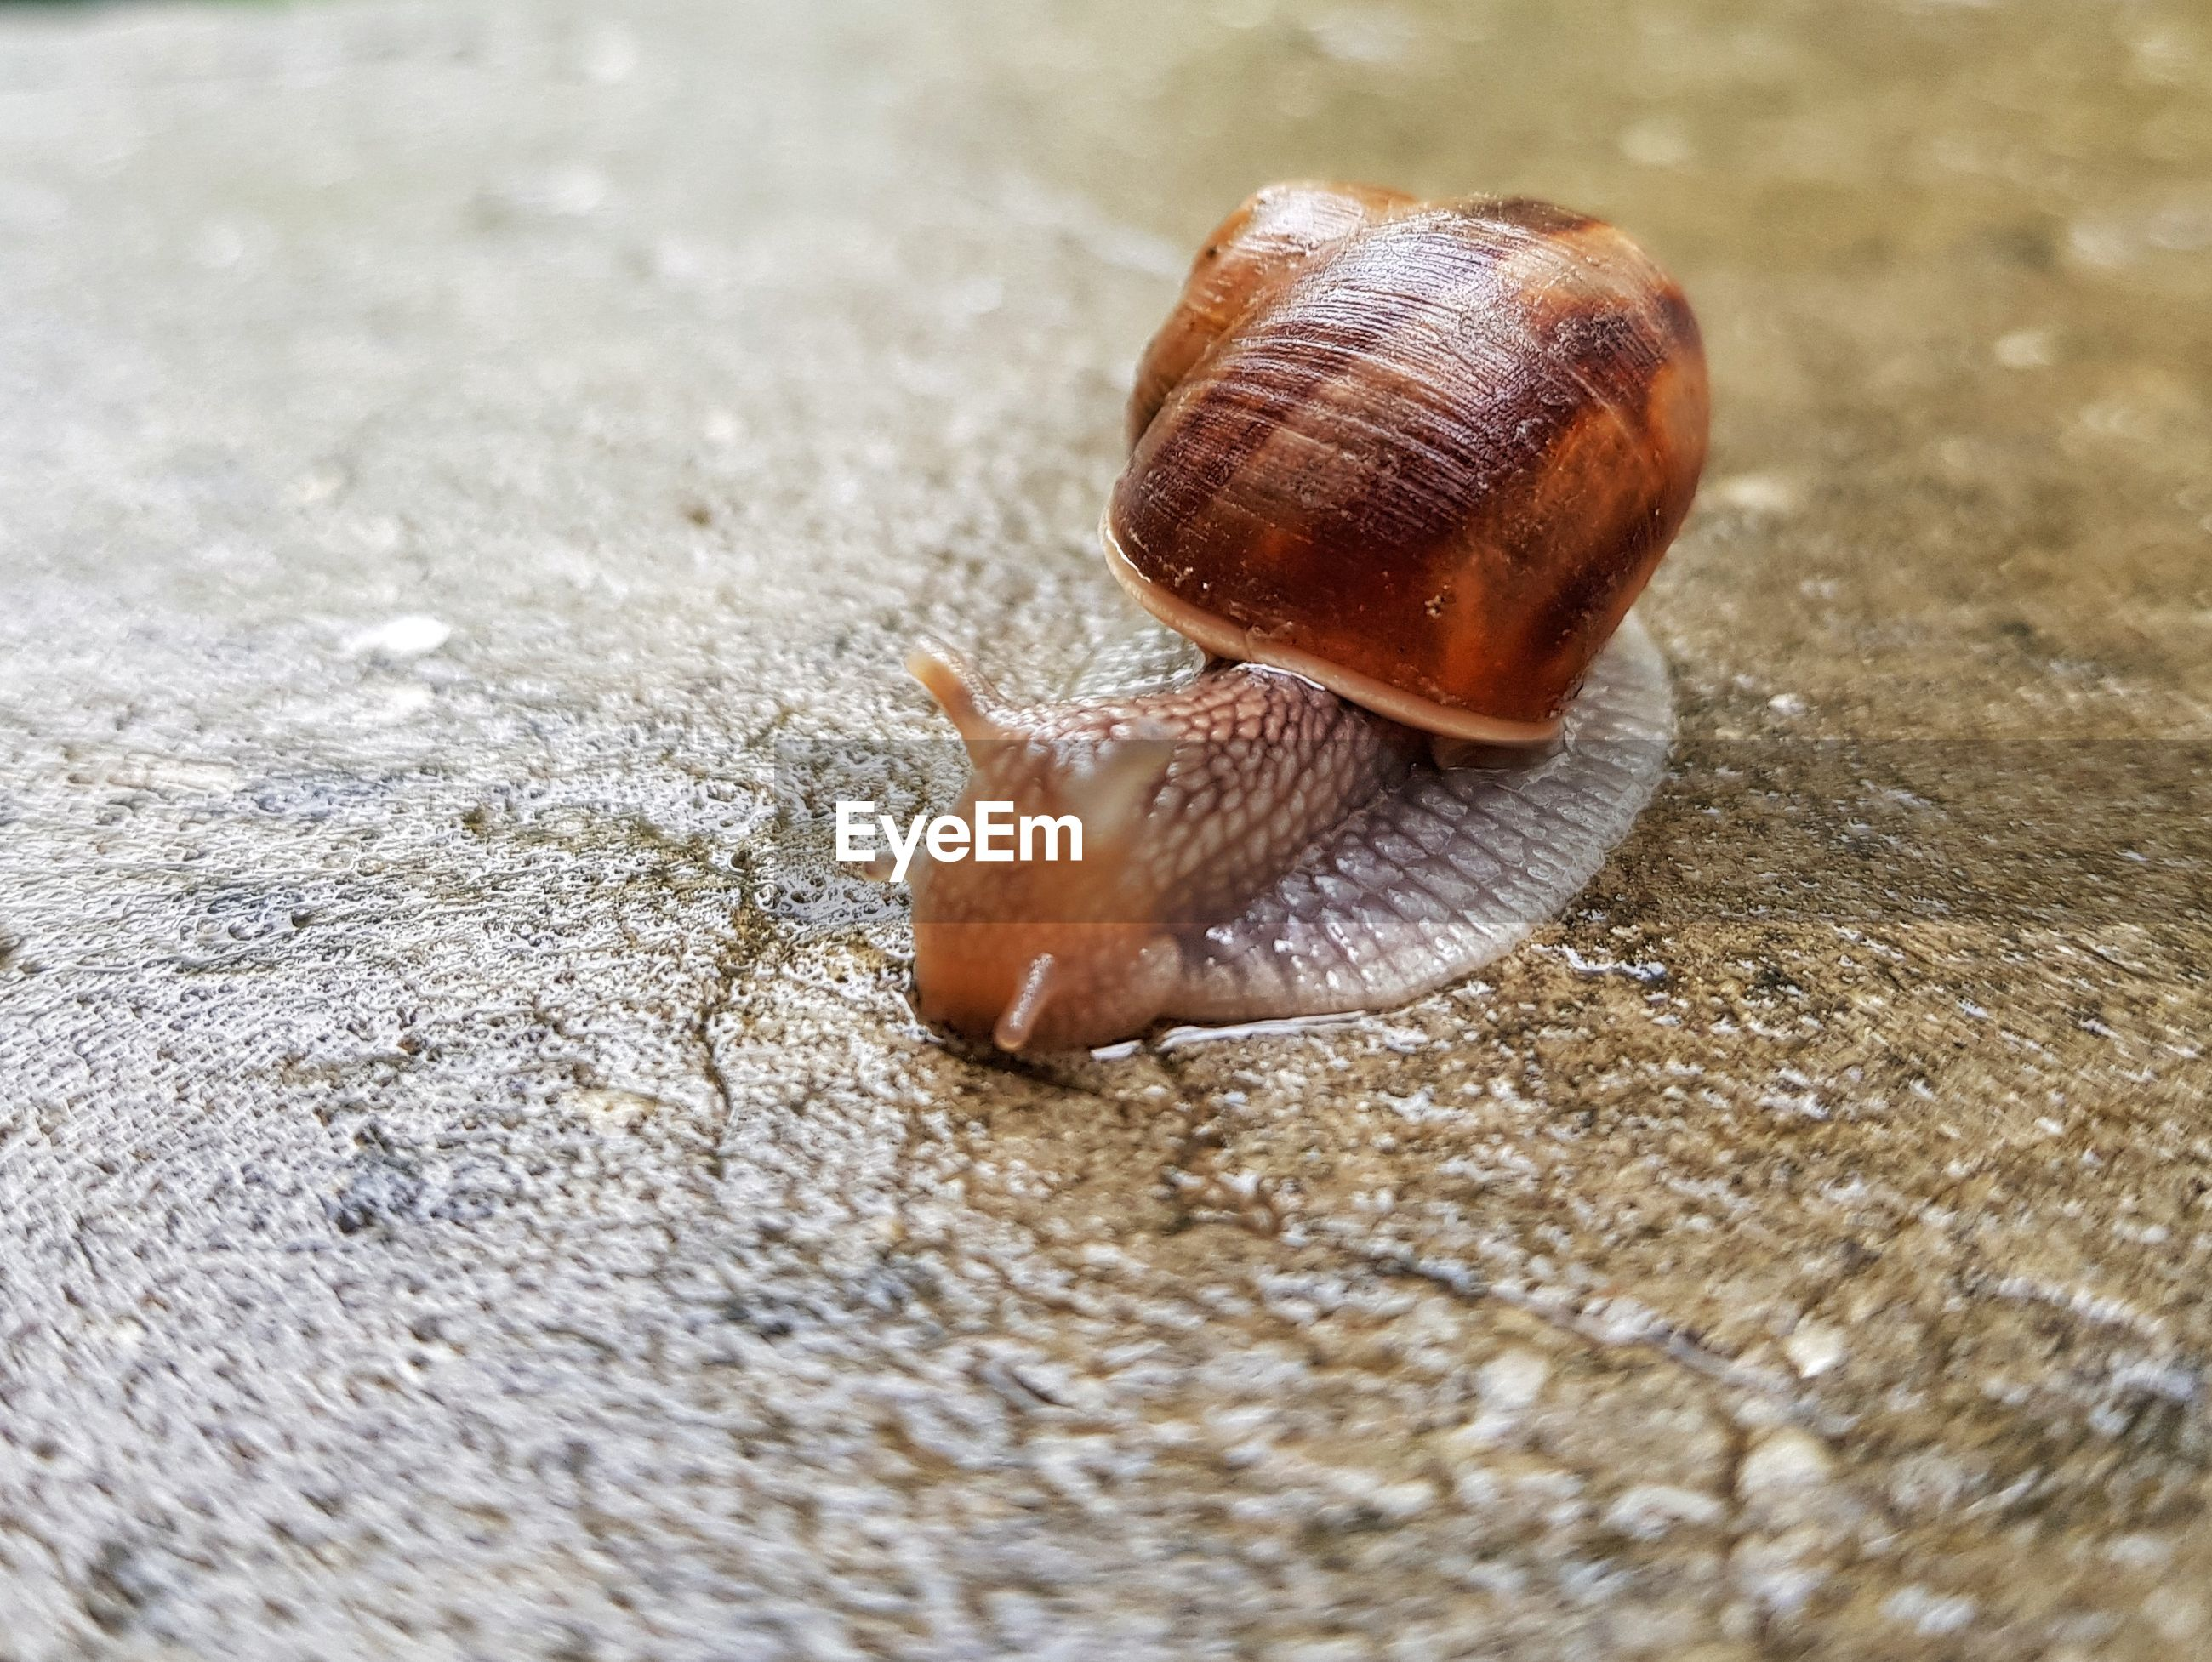 Close-up of snail on wet floor